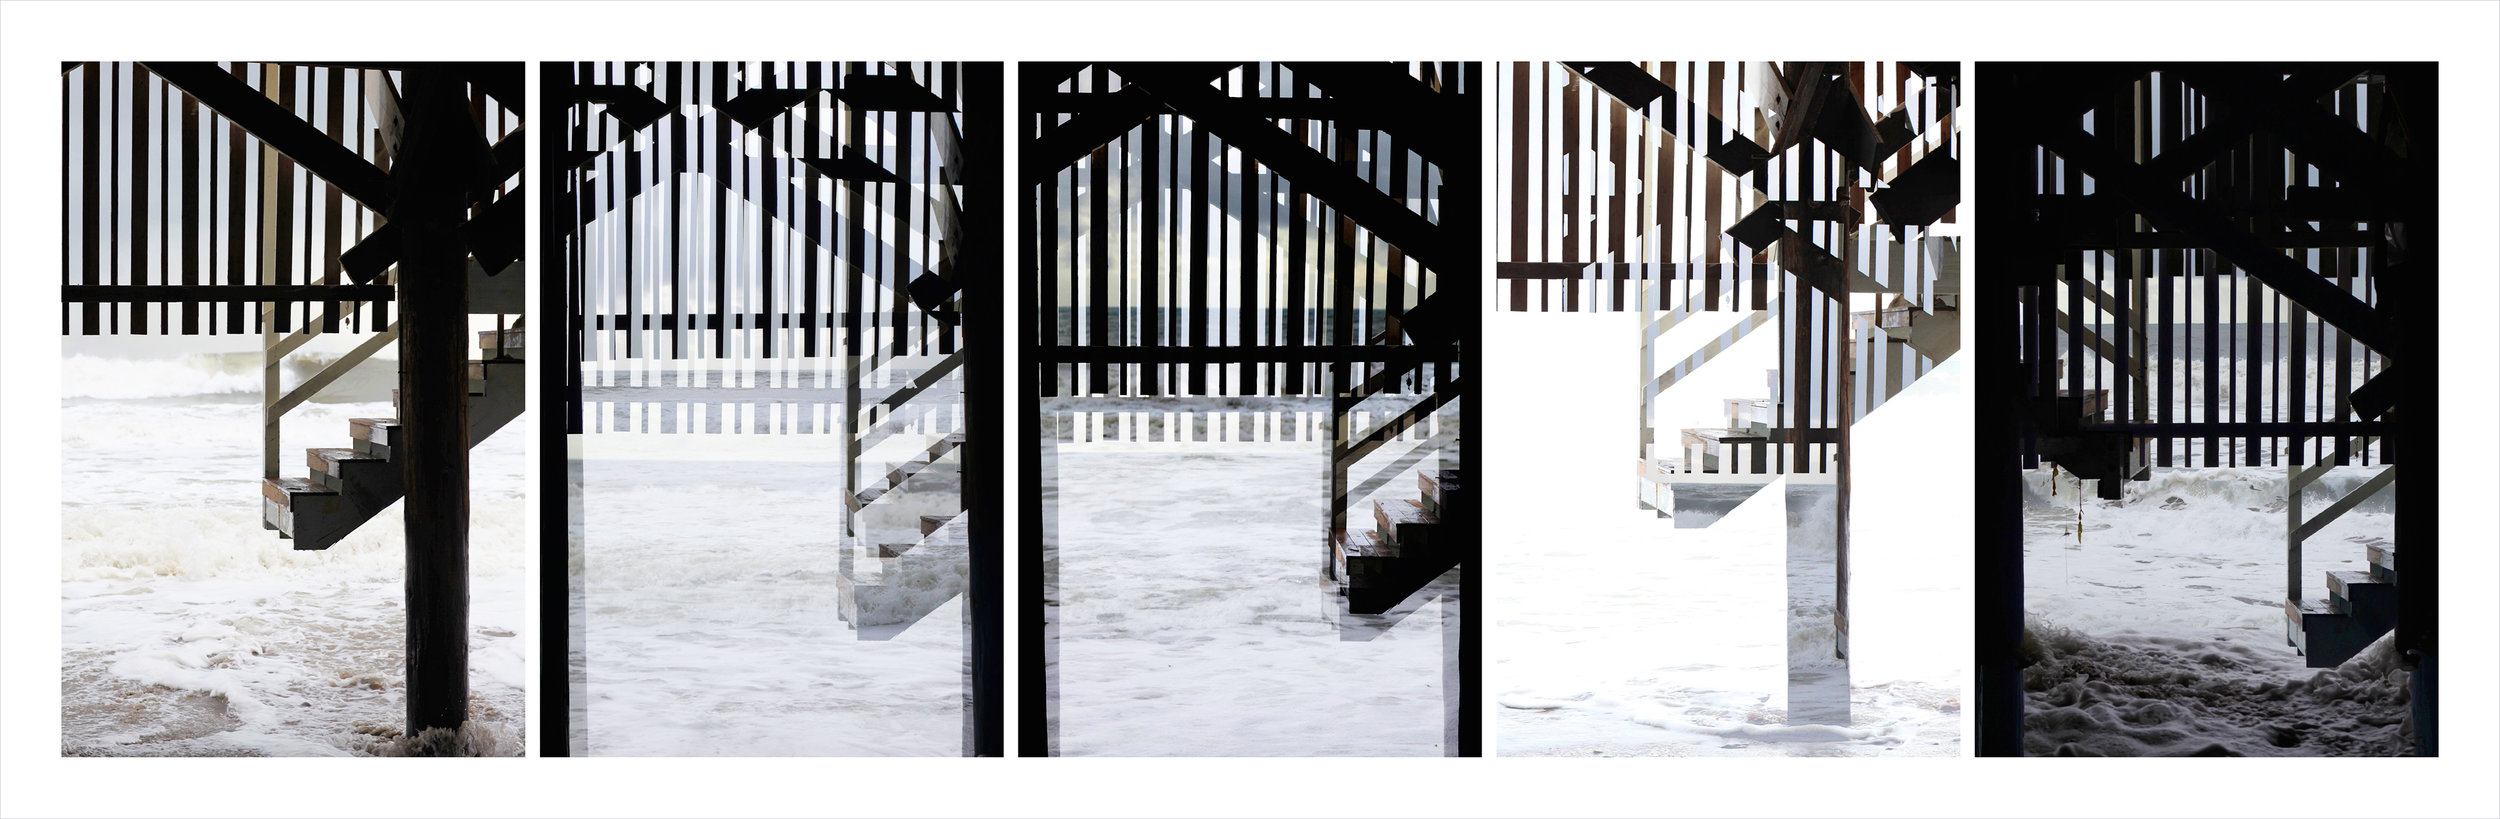 Untitled #30   (Nowhere)  , 2012/ archival pigment   print, 14  x 43 inches  ,  edition of 3 plus 2 AP